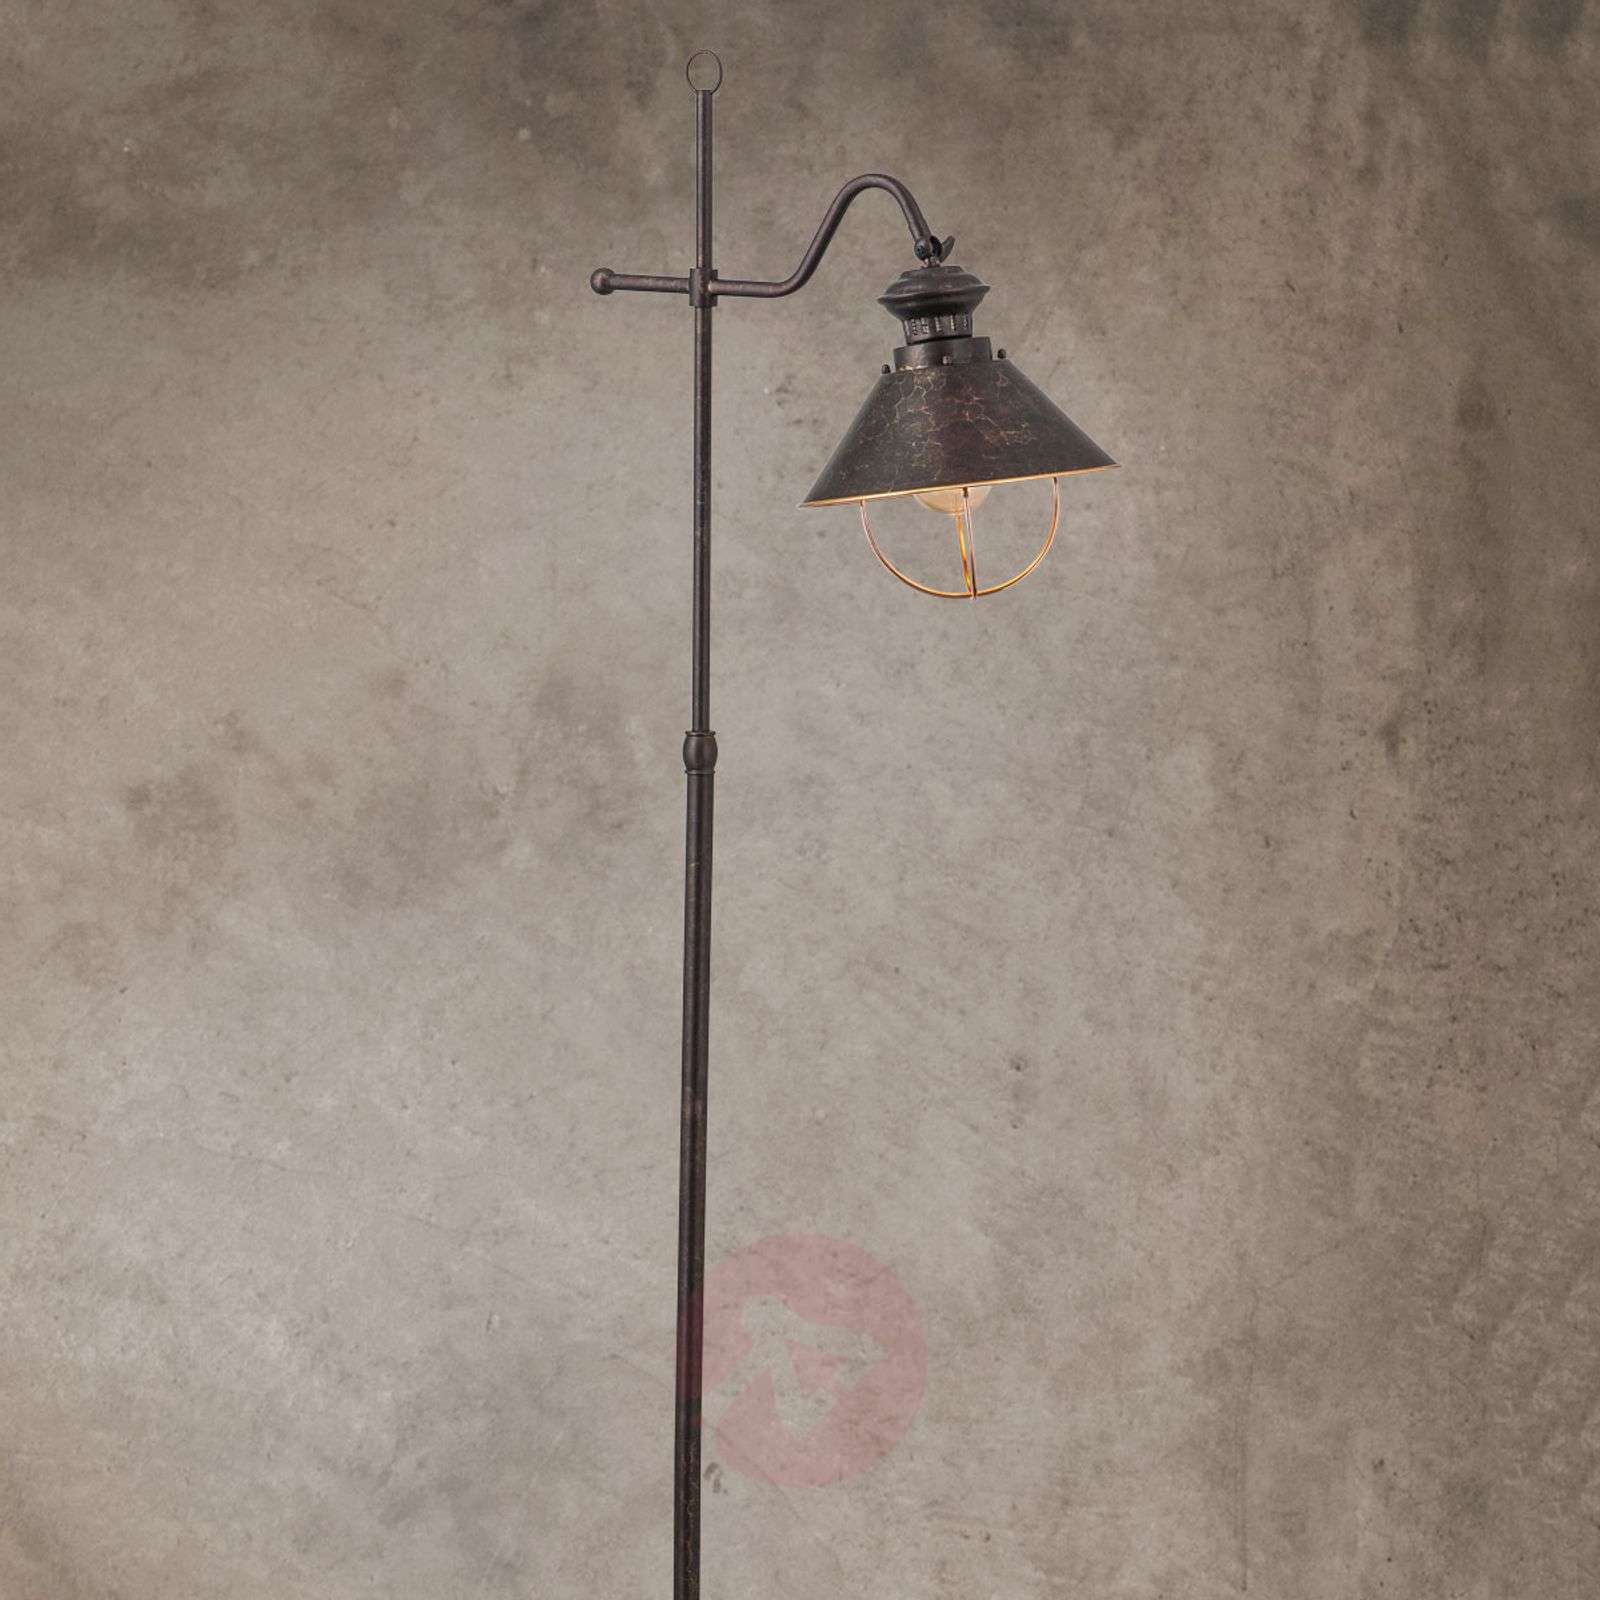 Shanta floor lamp in antique style-7255172-01